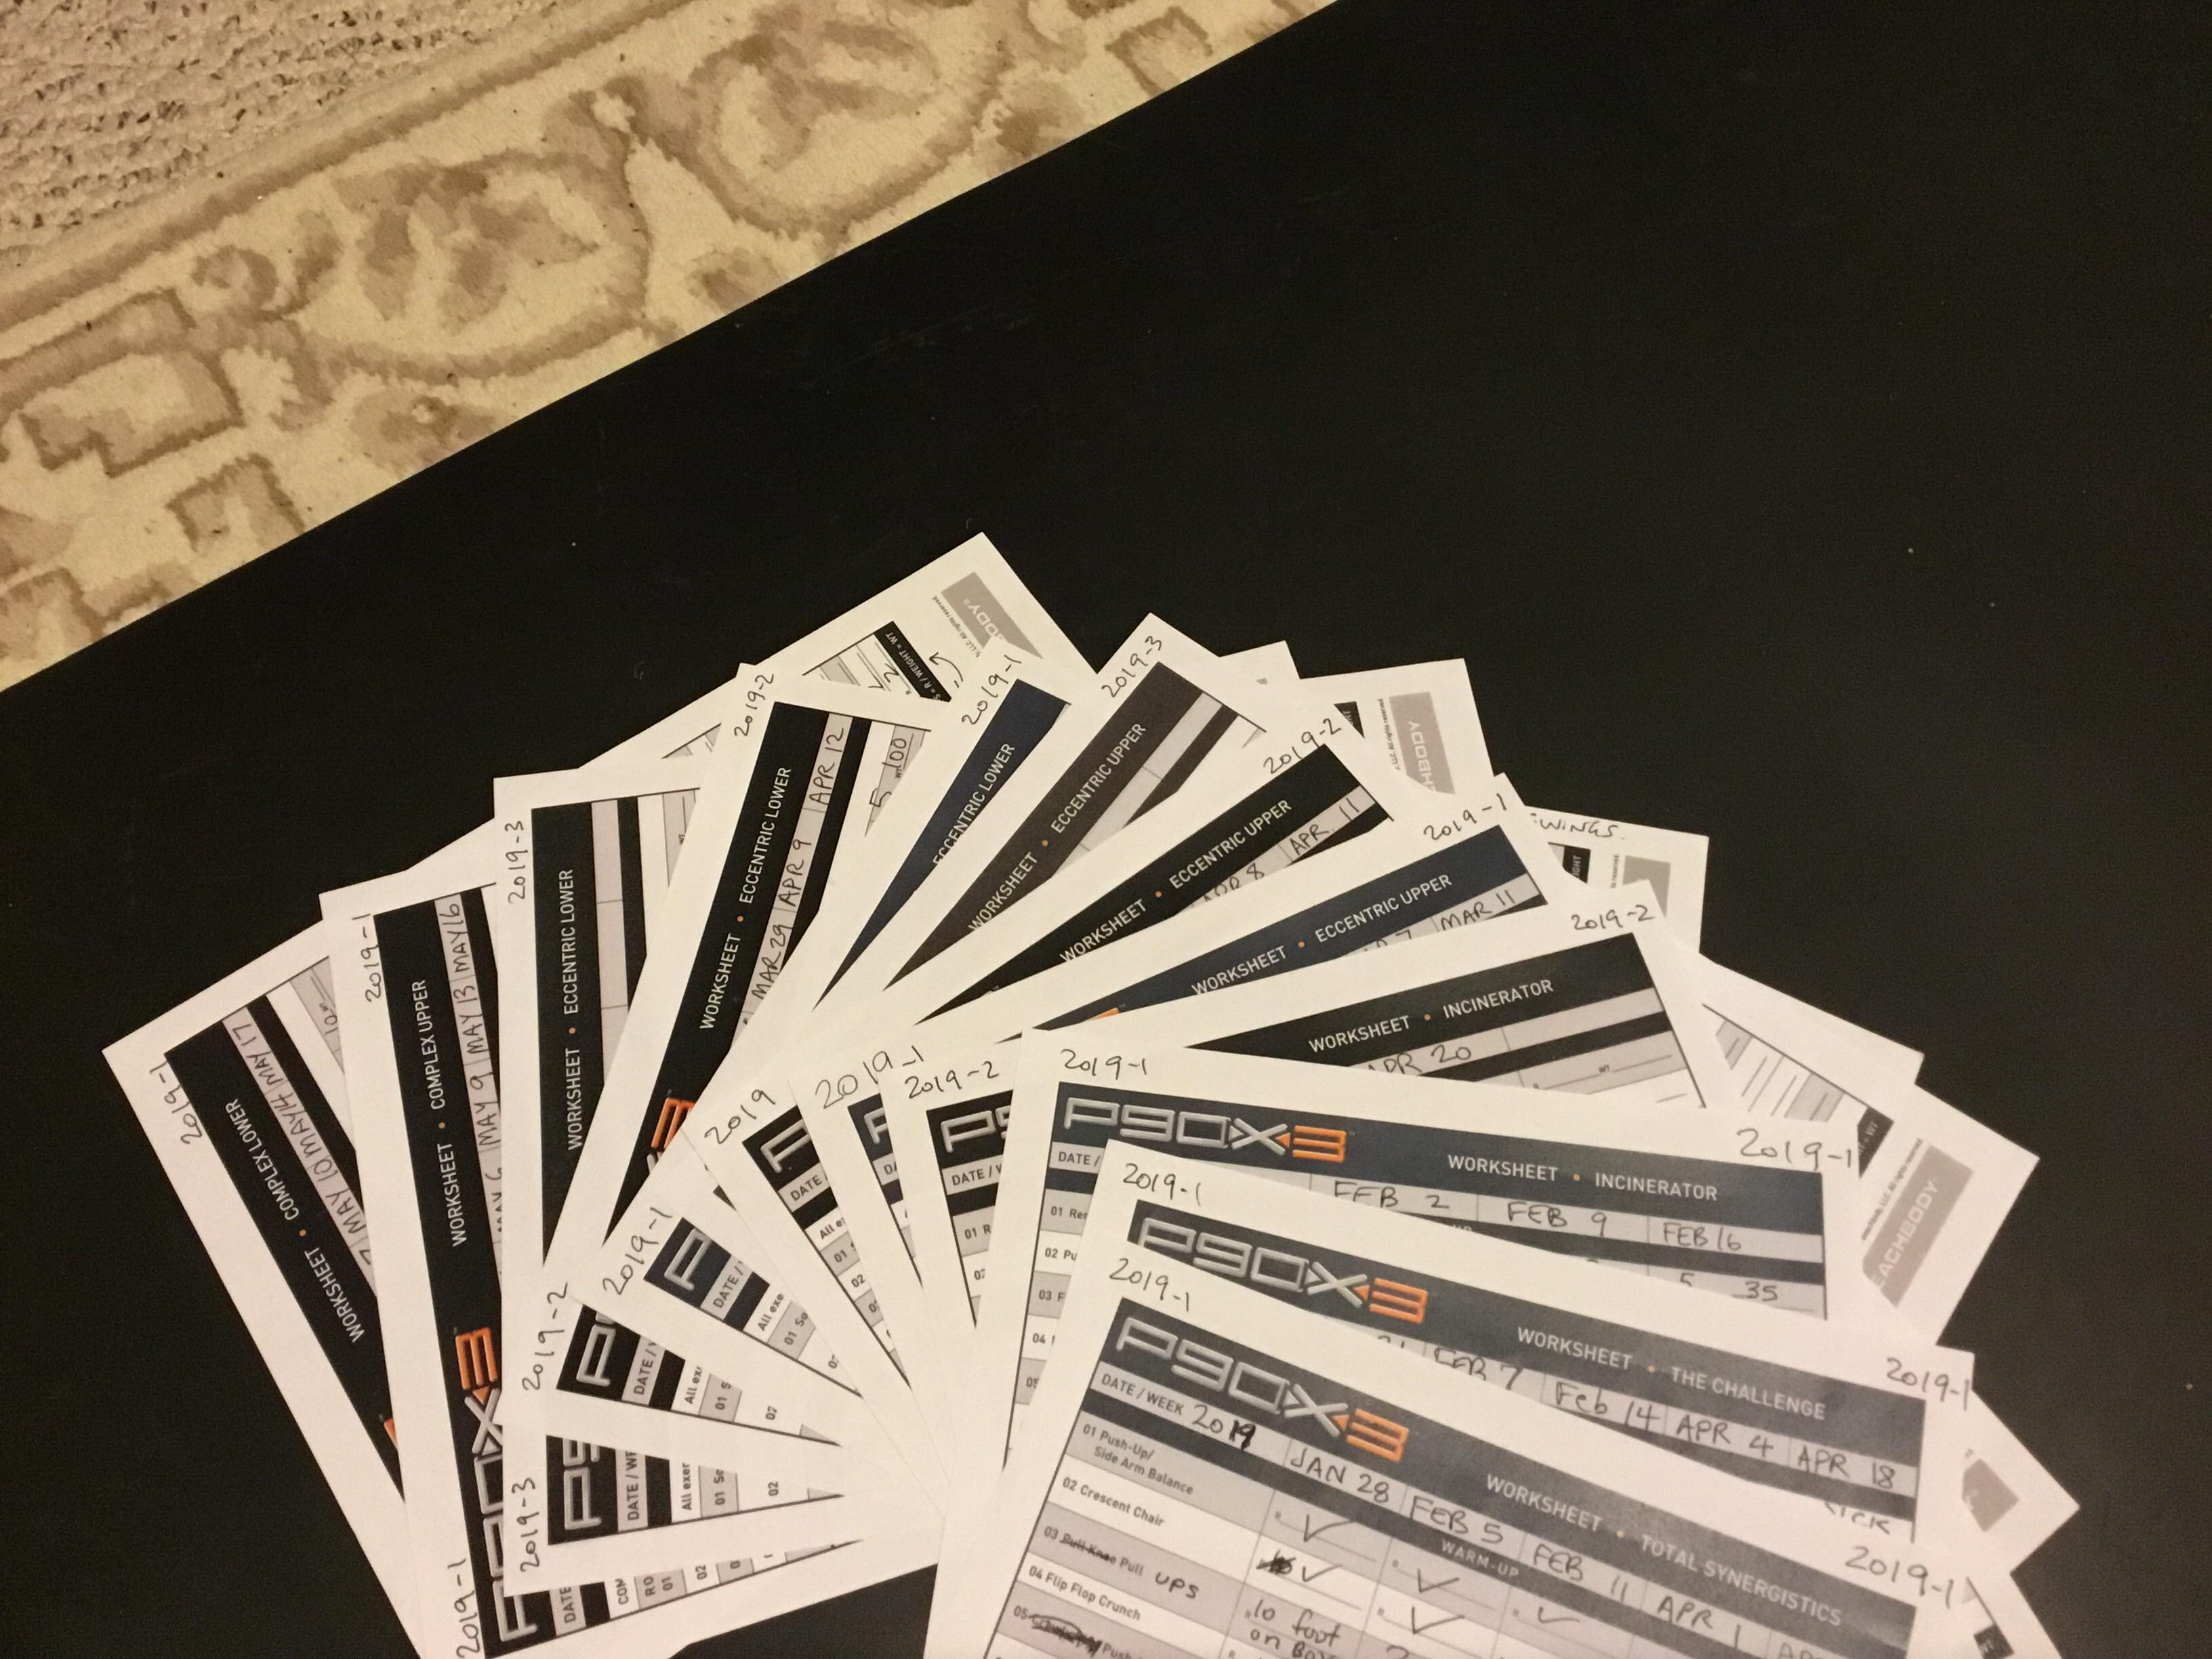 Completed Worksheets From 120 Days Of P90x3 January 28th